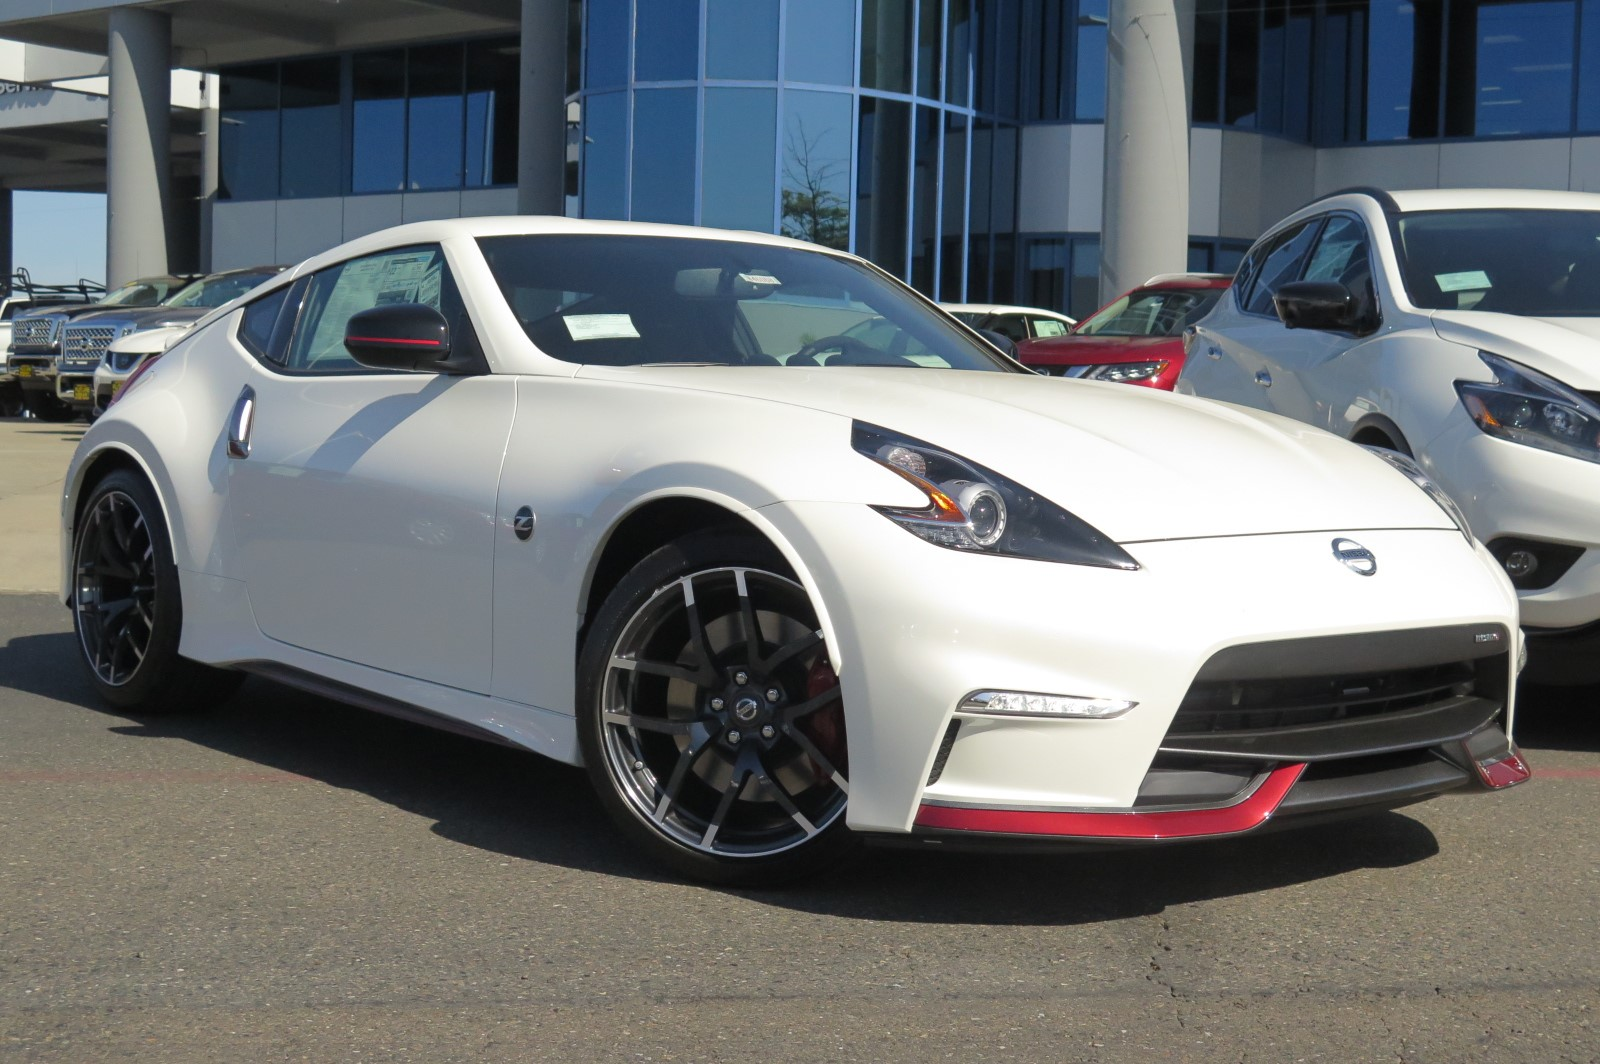 New 2018 Nissan 370z Coupe Nismo 2dr Car In Roseville N46068